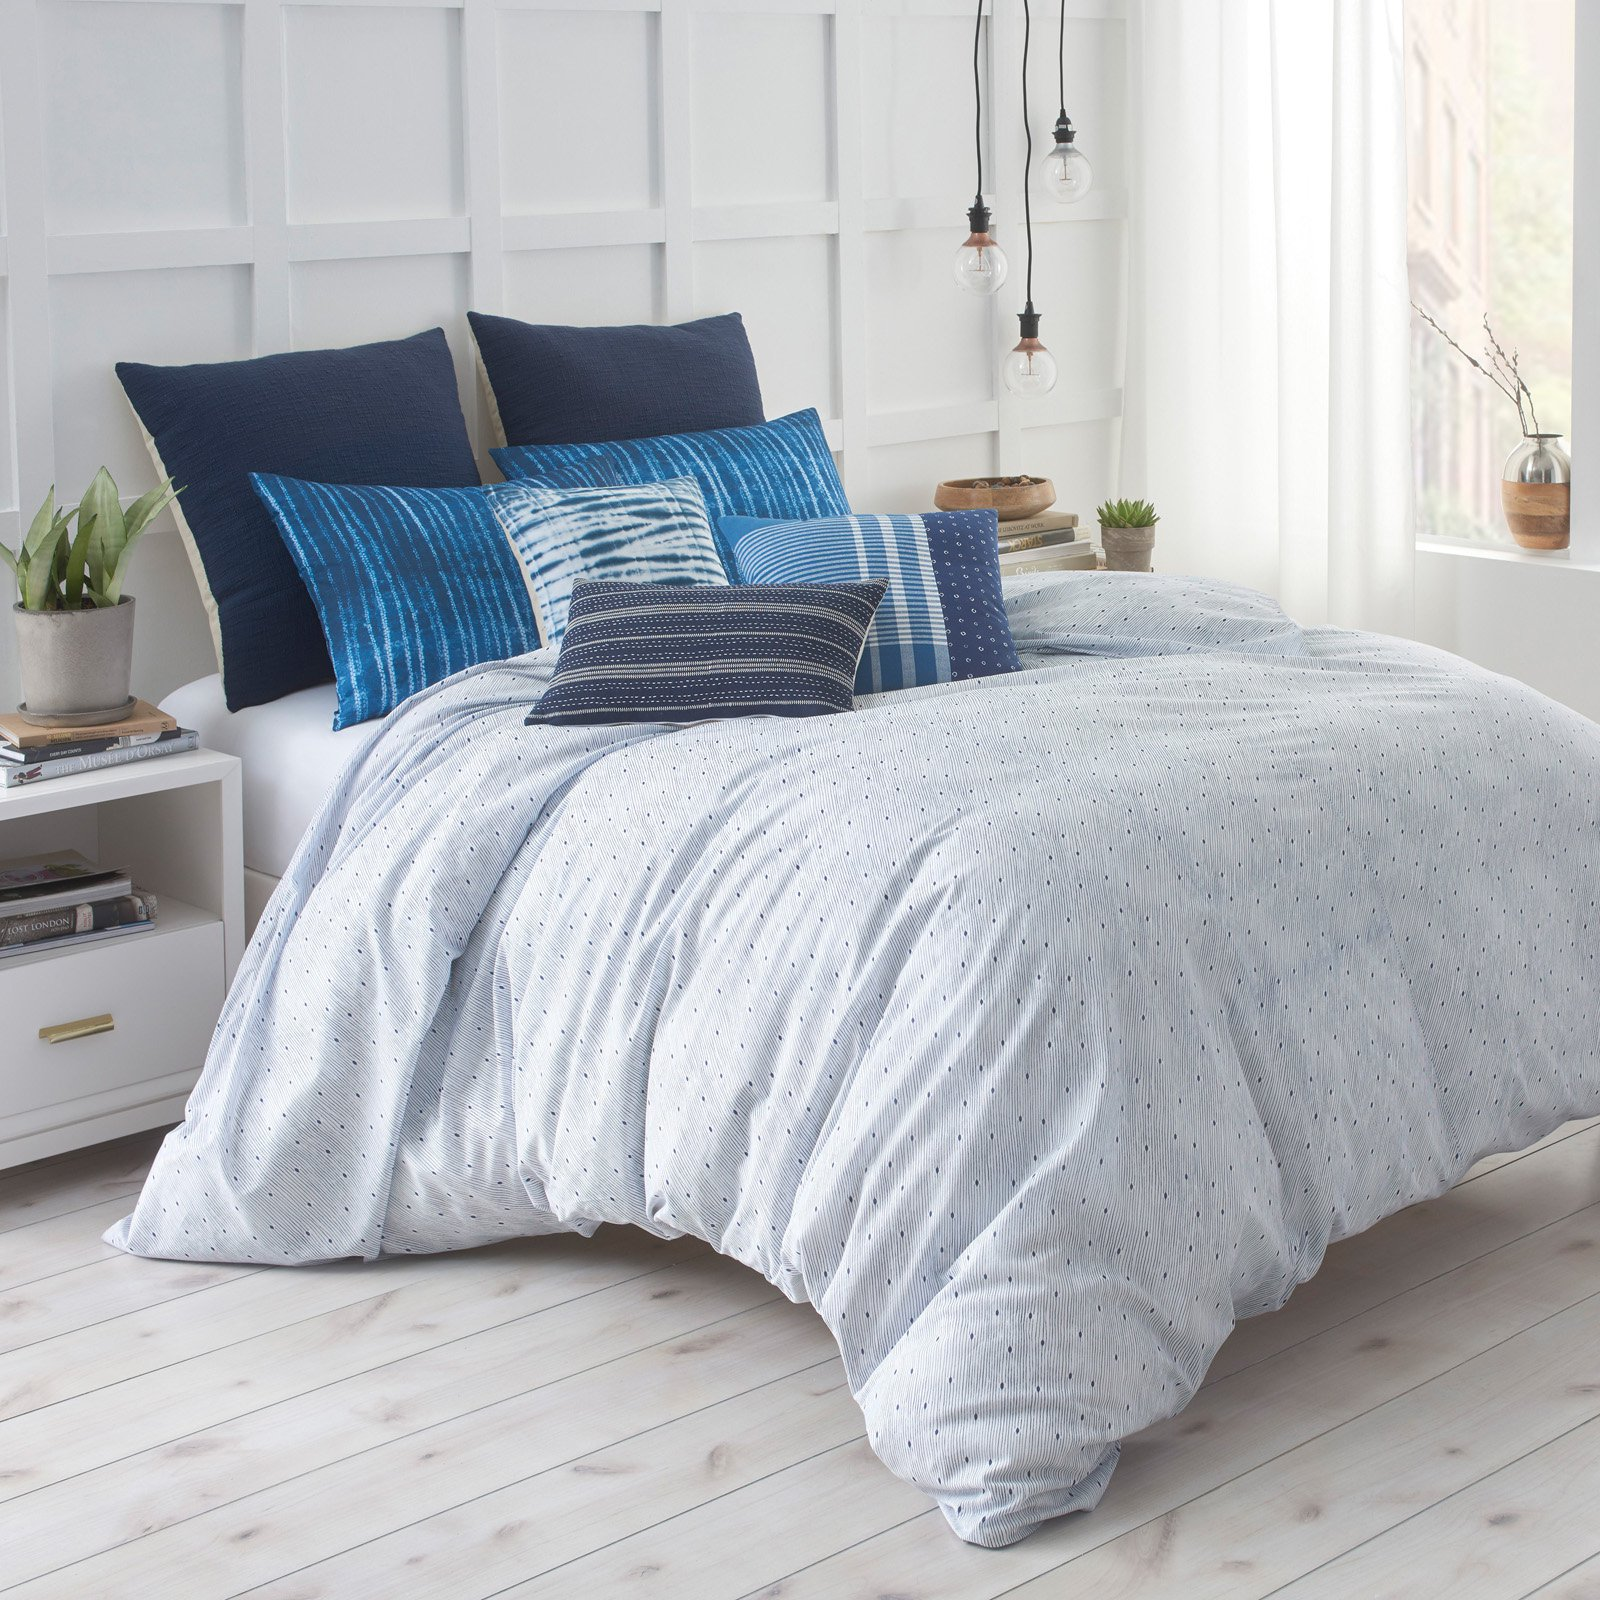 Under the Canopy Shibori Chic Duvet Cover Set